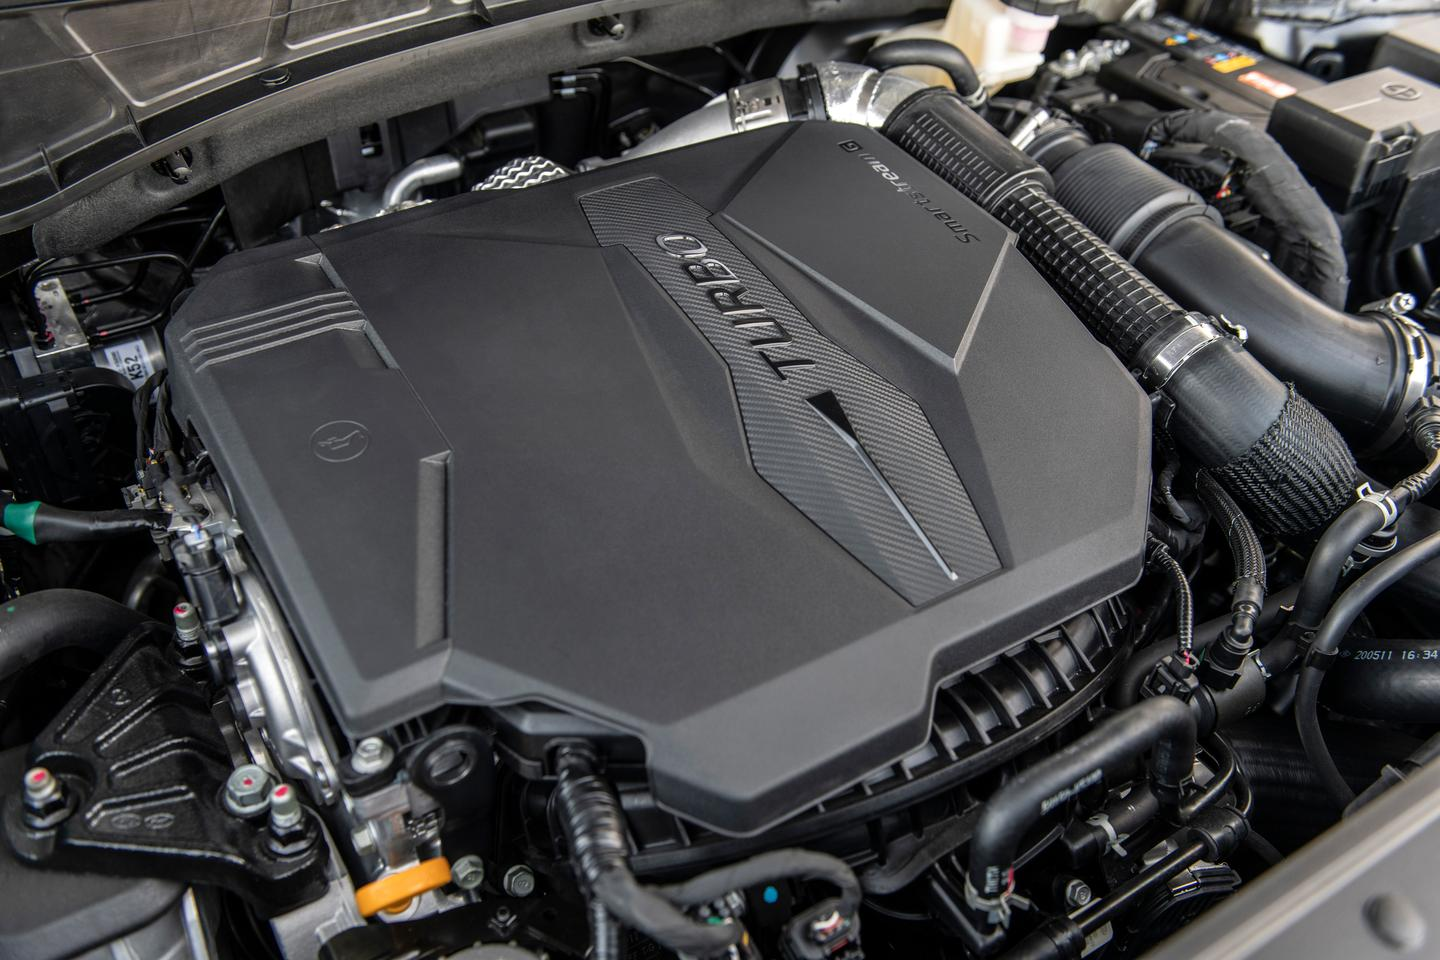 Both a standard and a turbocharged 2.5-liter four-cylinder engine power the new Santa Cruz